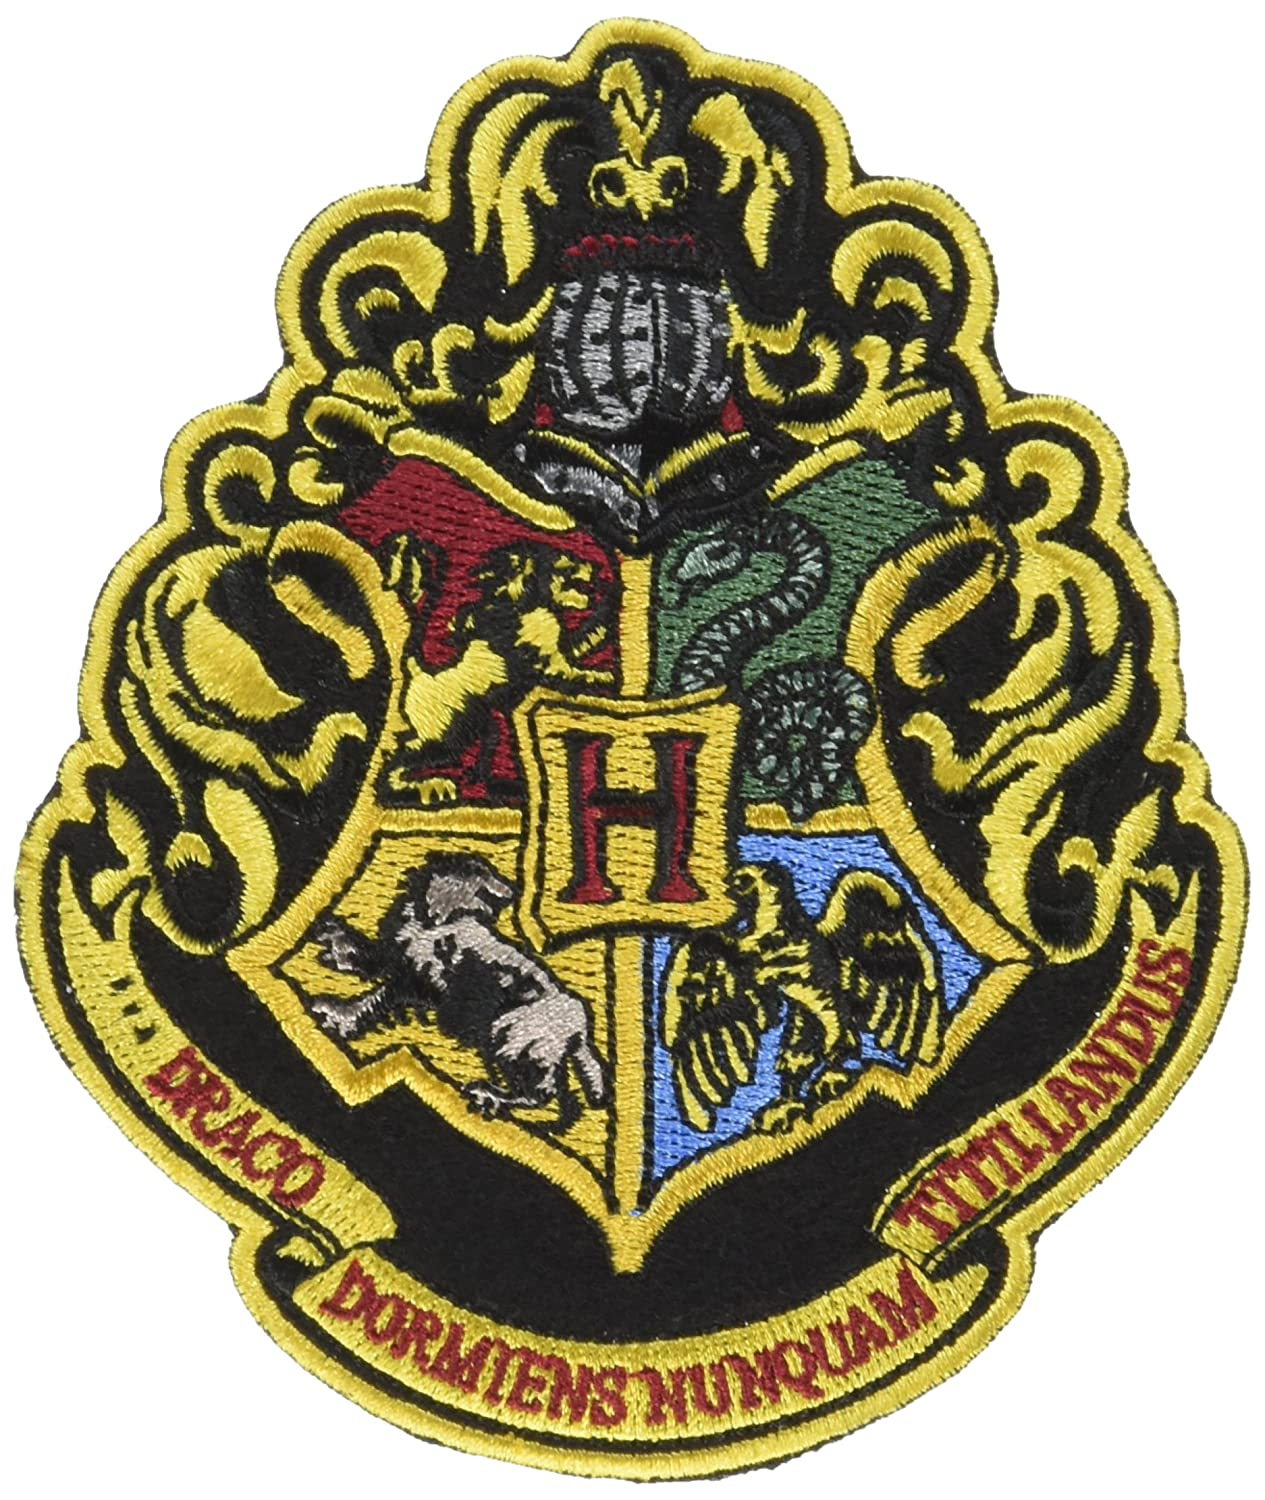 Amazon Harry Potter The 4 Houses Of Hogwarts Crest Patch 4 12